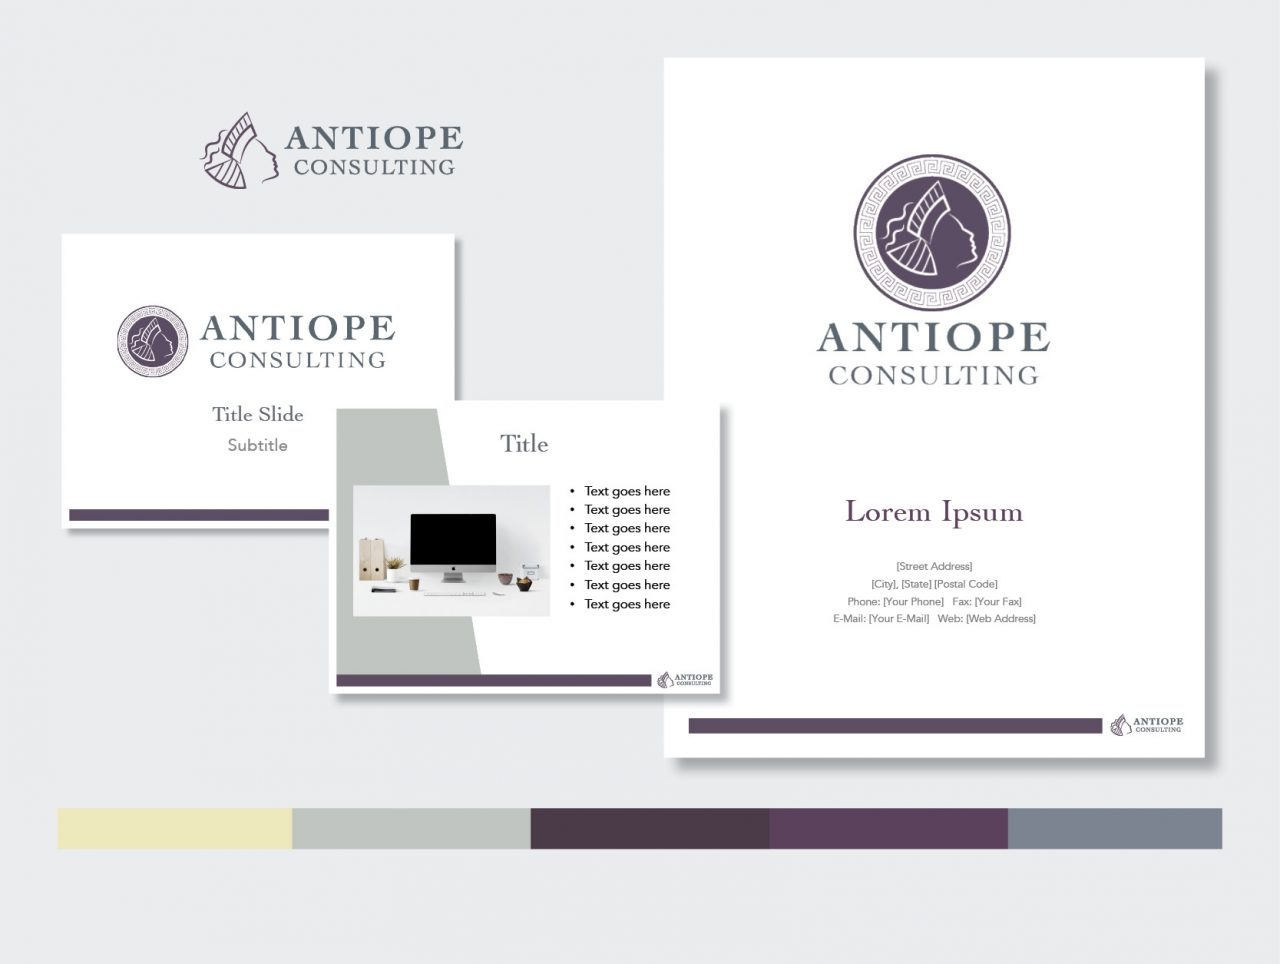 Antiope Consulting logo, presentation, and proposal templates